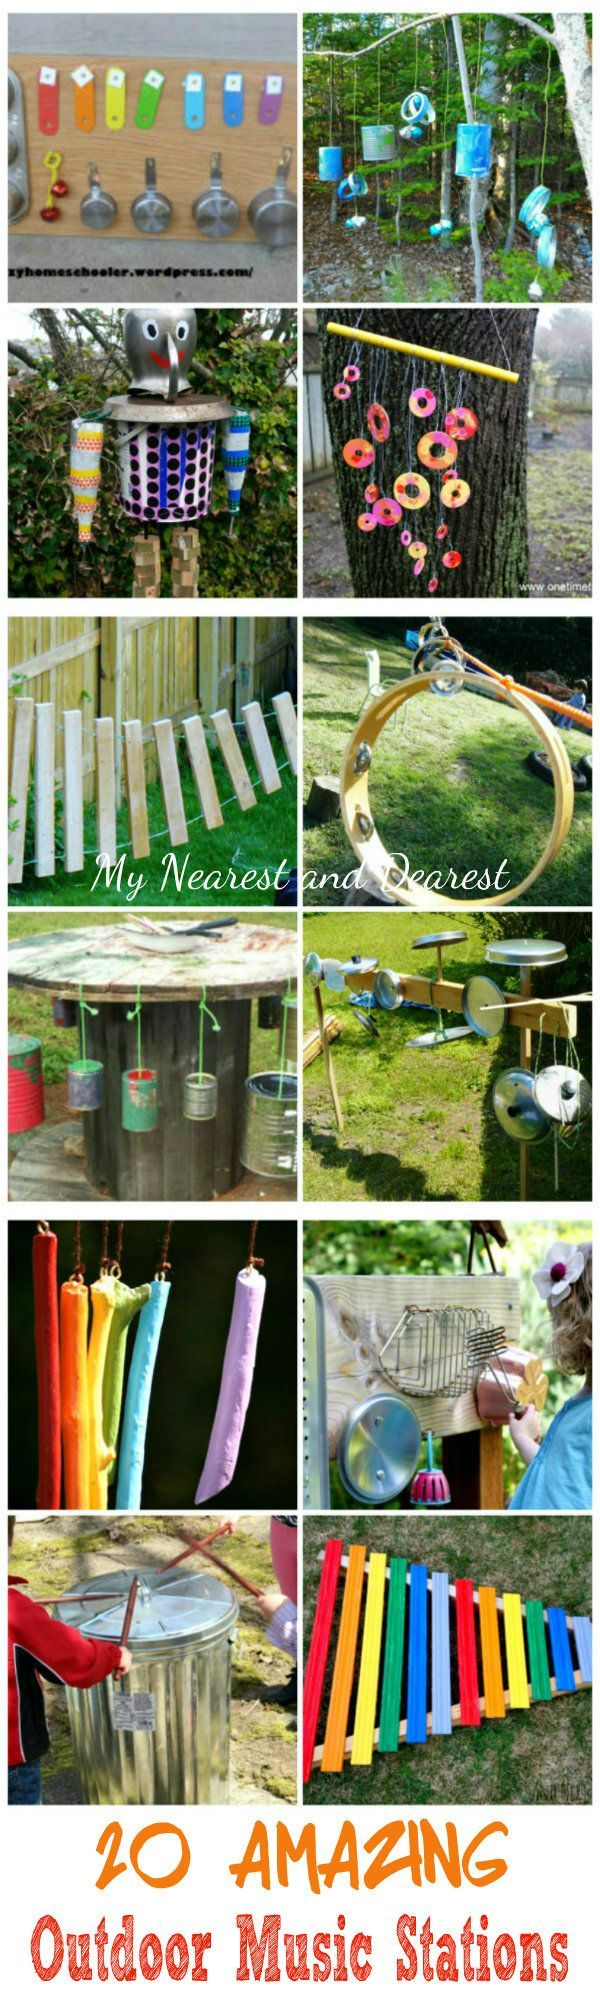 20 Amazing Outdoor Music Stations. From wind chimes, to banging walls, to a cool music man this post has SO much inspiration.